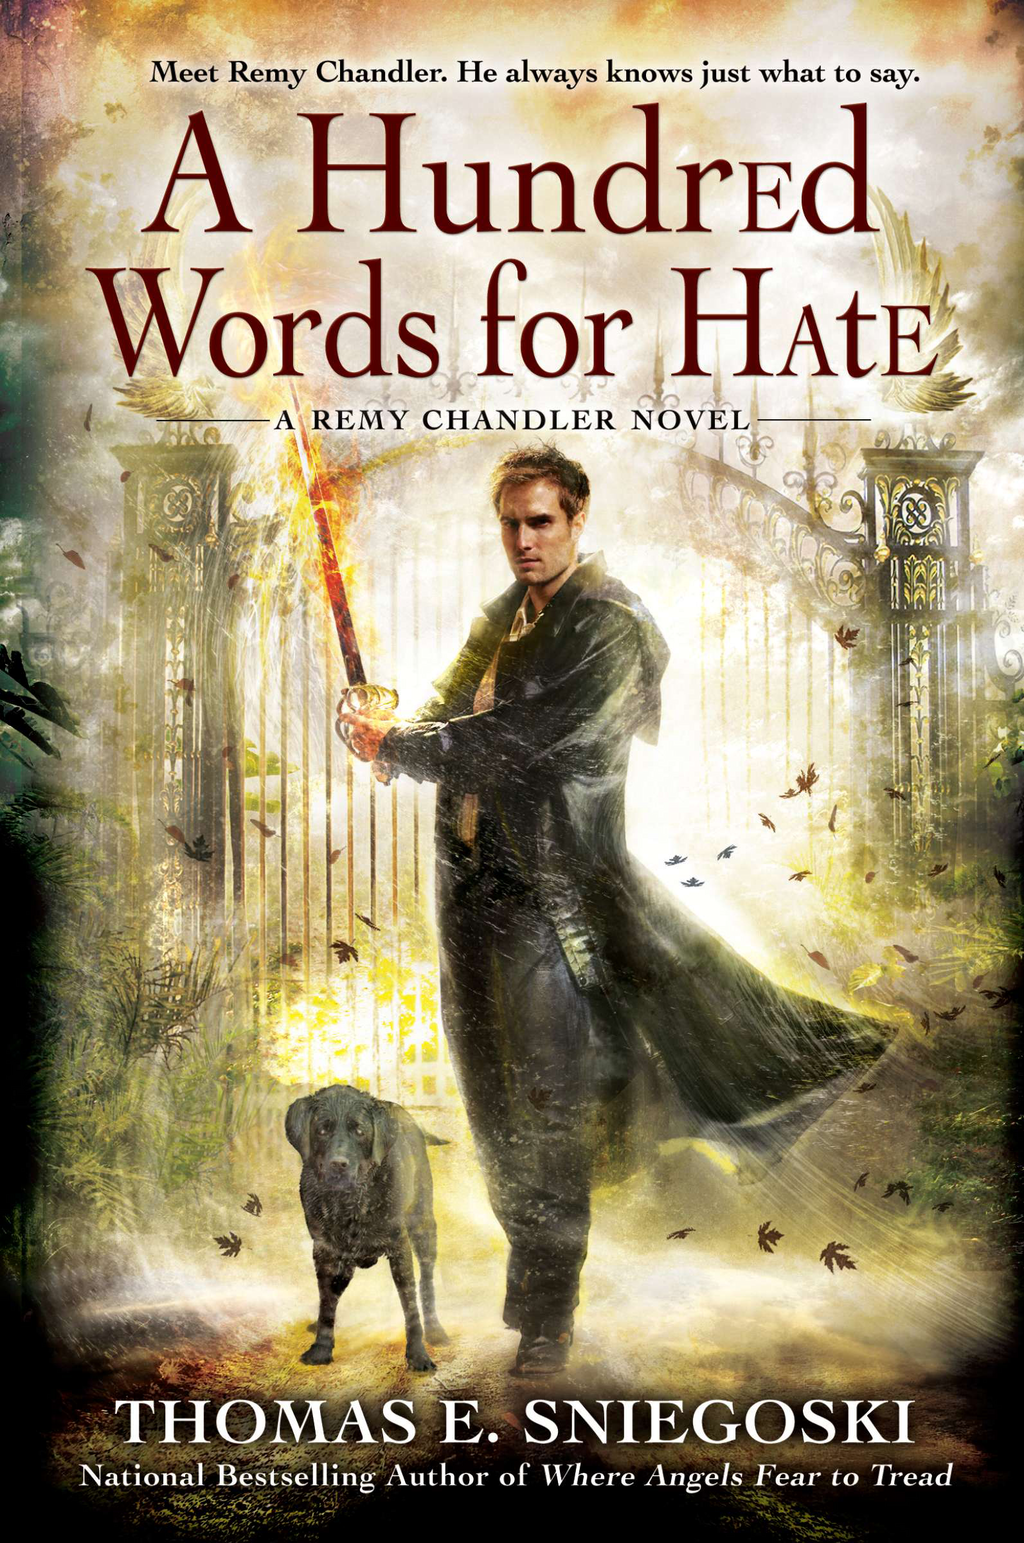 A Hundred Words for Hate By: Thomas E. Sniegoski